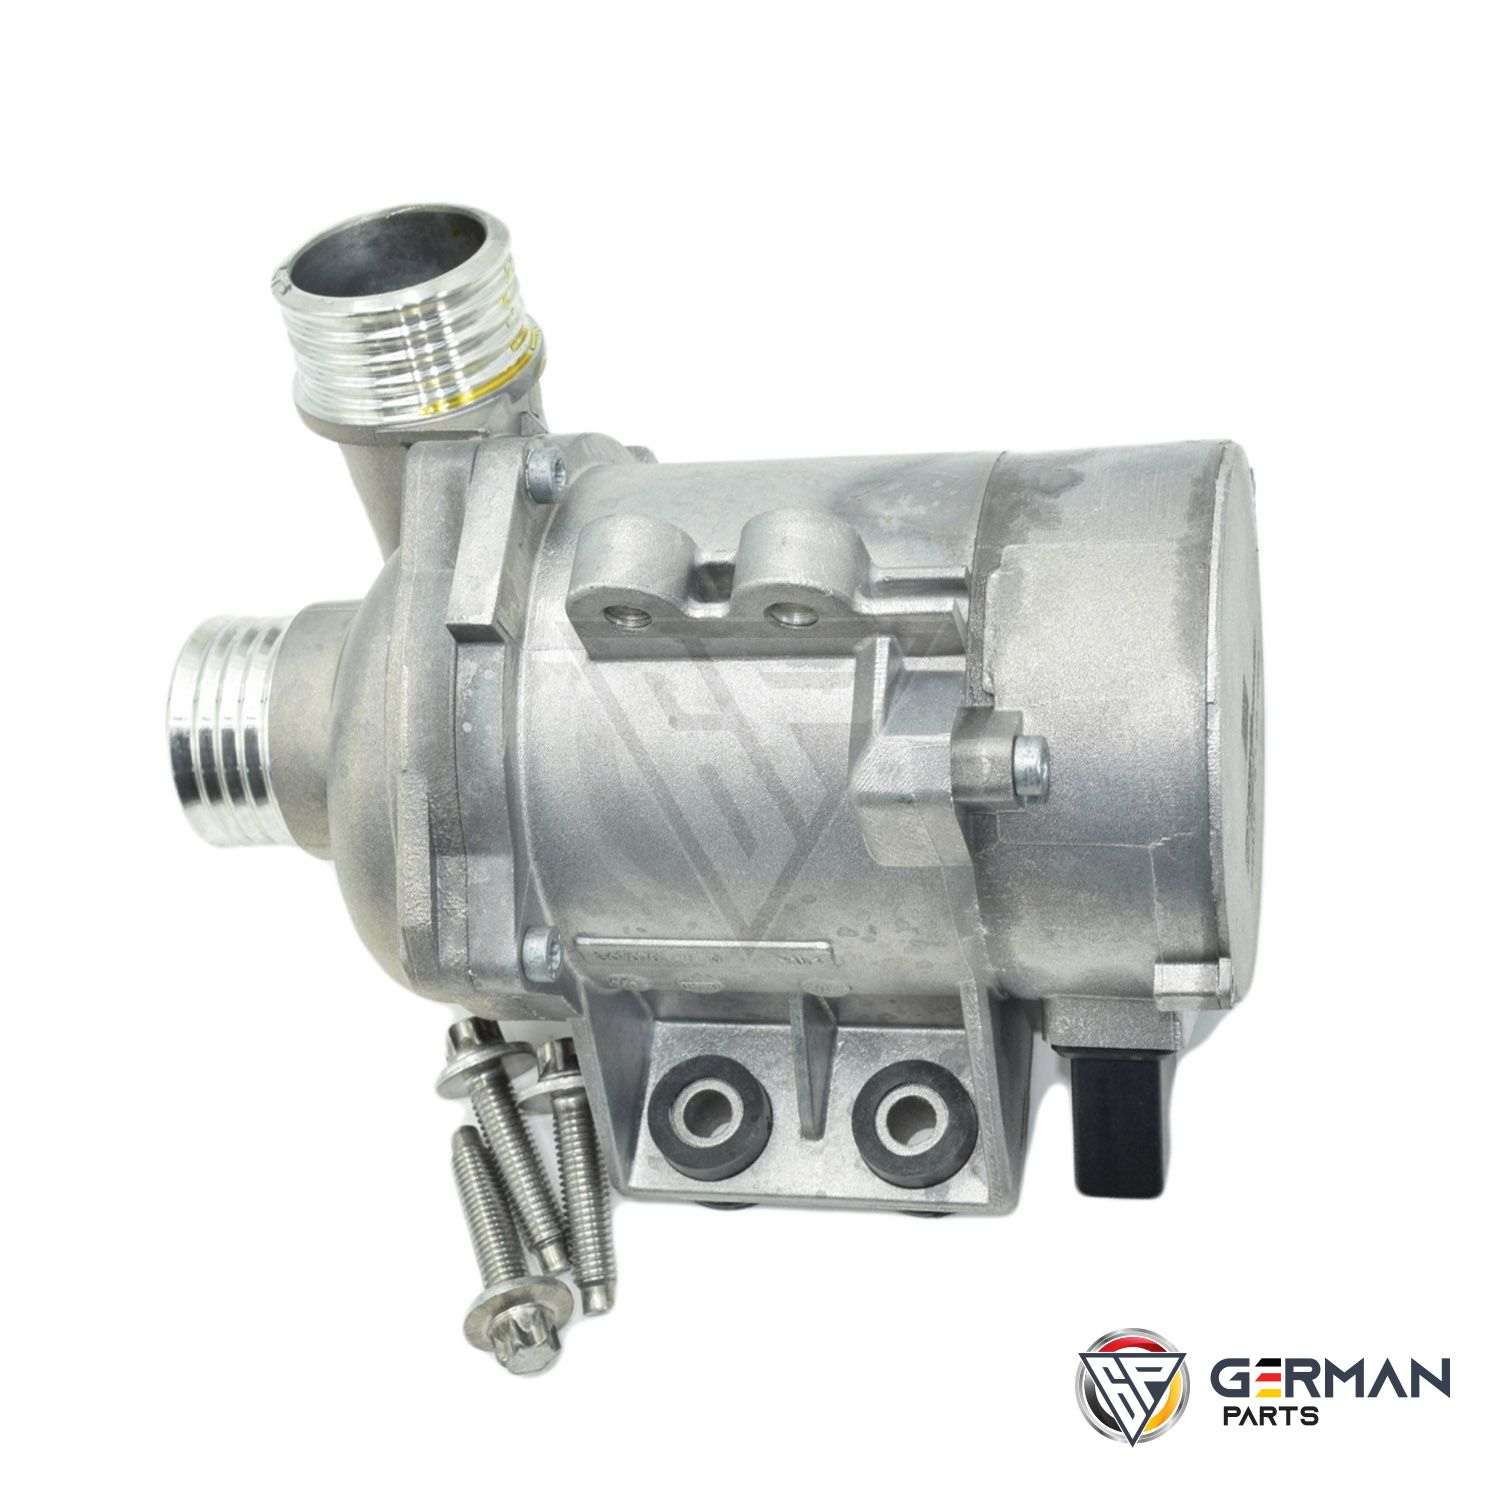 Buy Pierburg Water Pump 11517586925 - German Parts